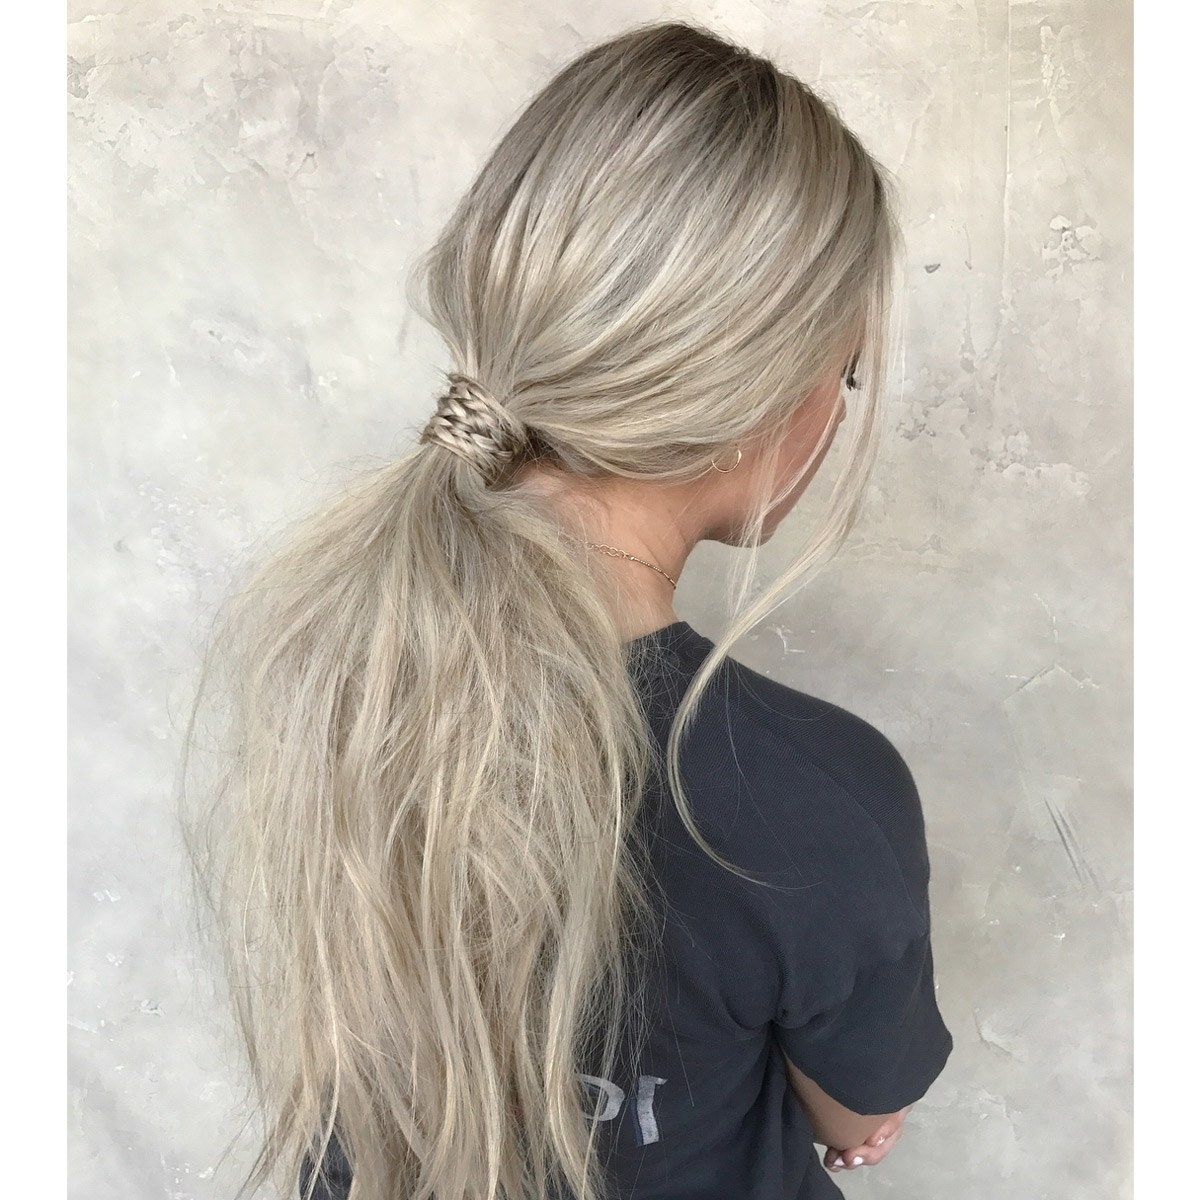 27 Ponytail Hairstyles For 2018: Best Ponytail Styles (View 7 of 20)